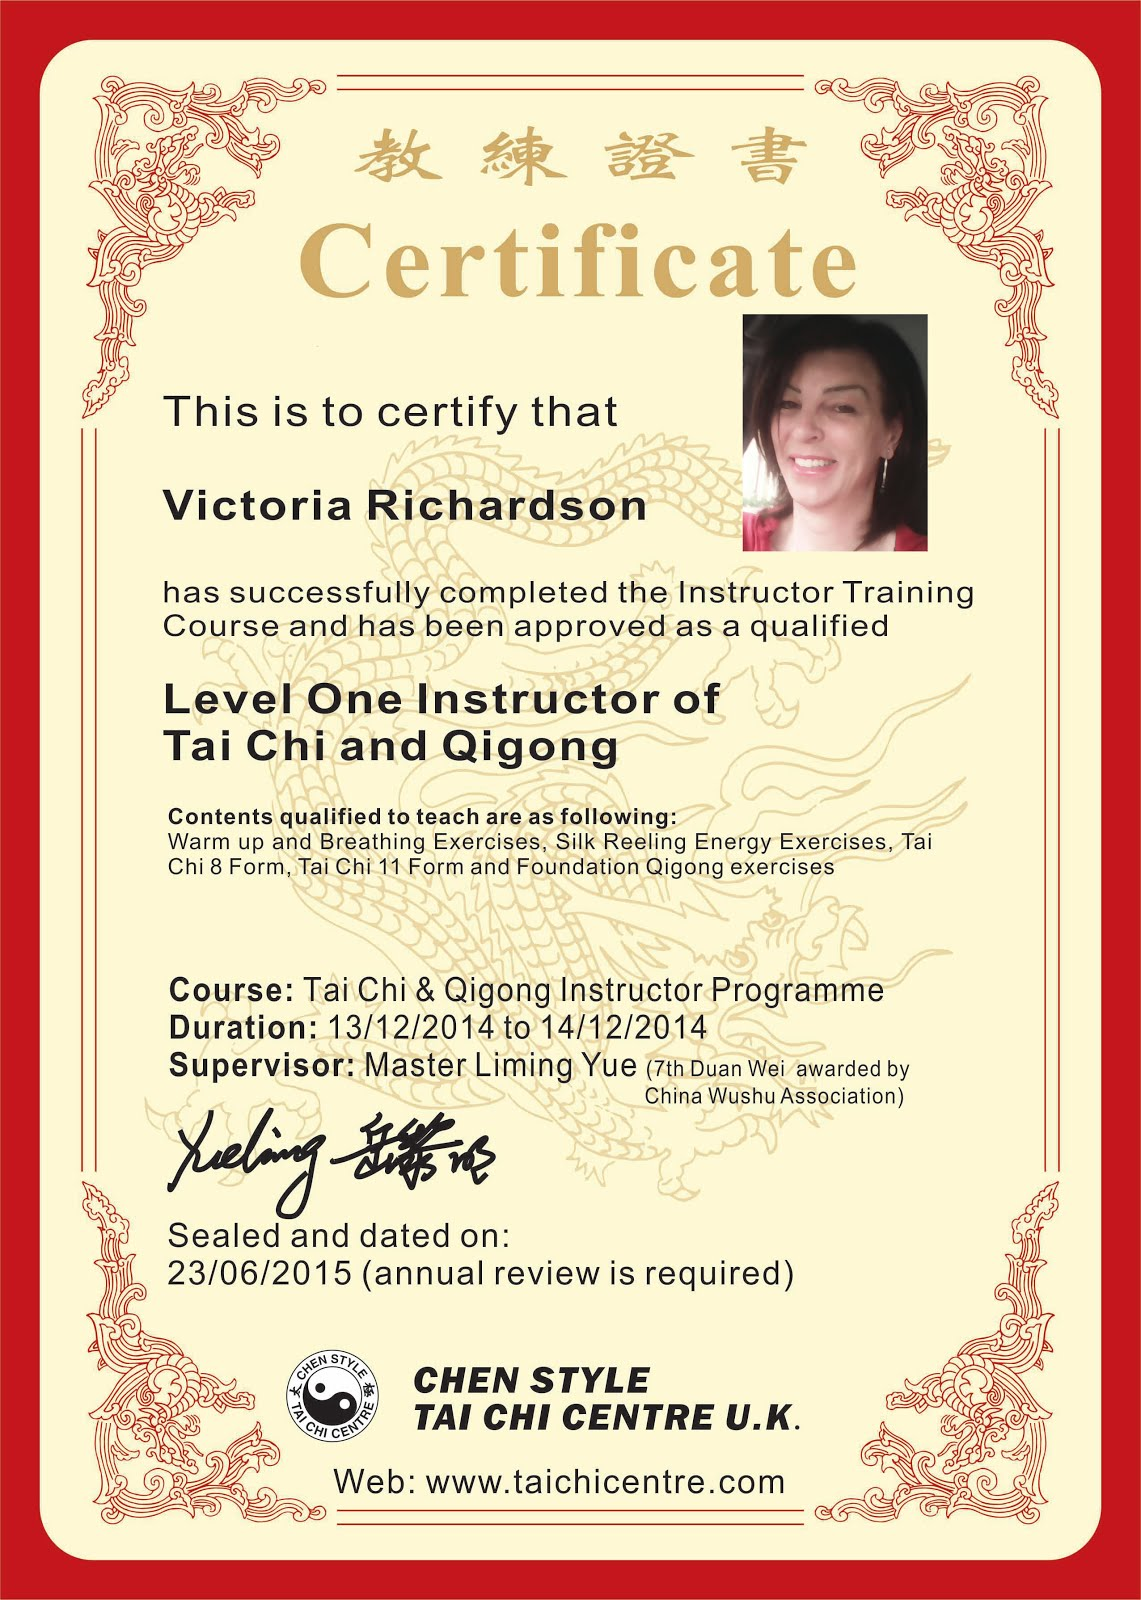 Tai Chi & Qigong Instructor